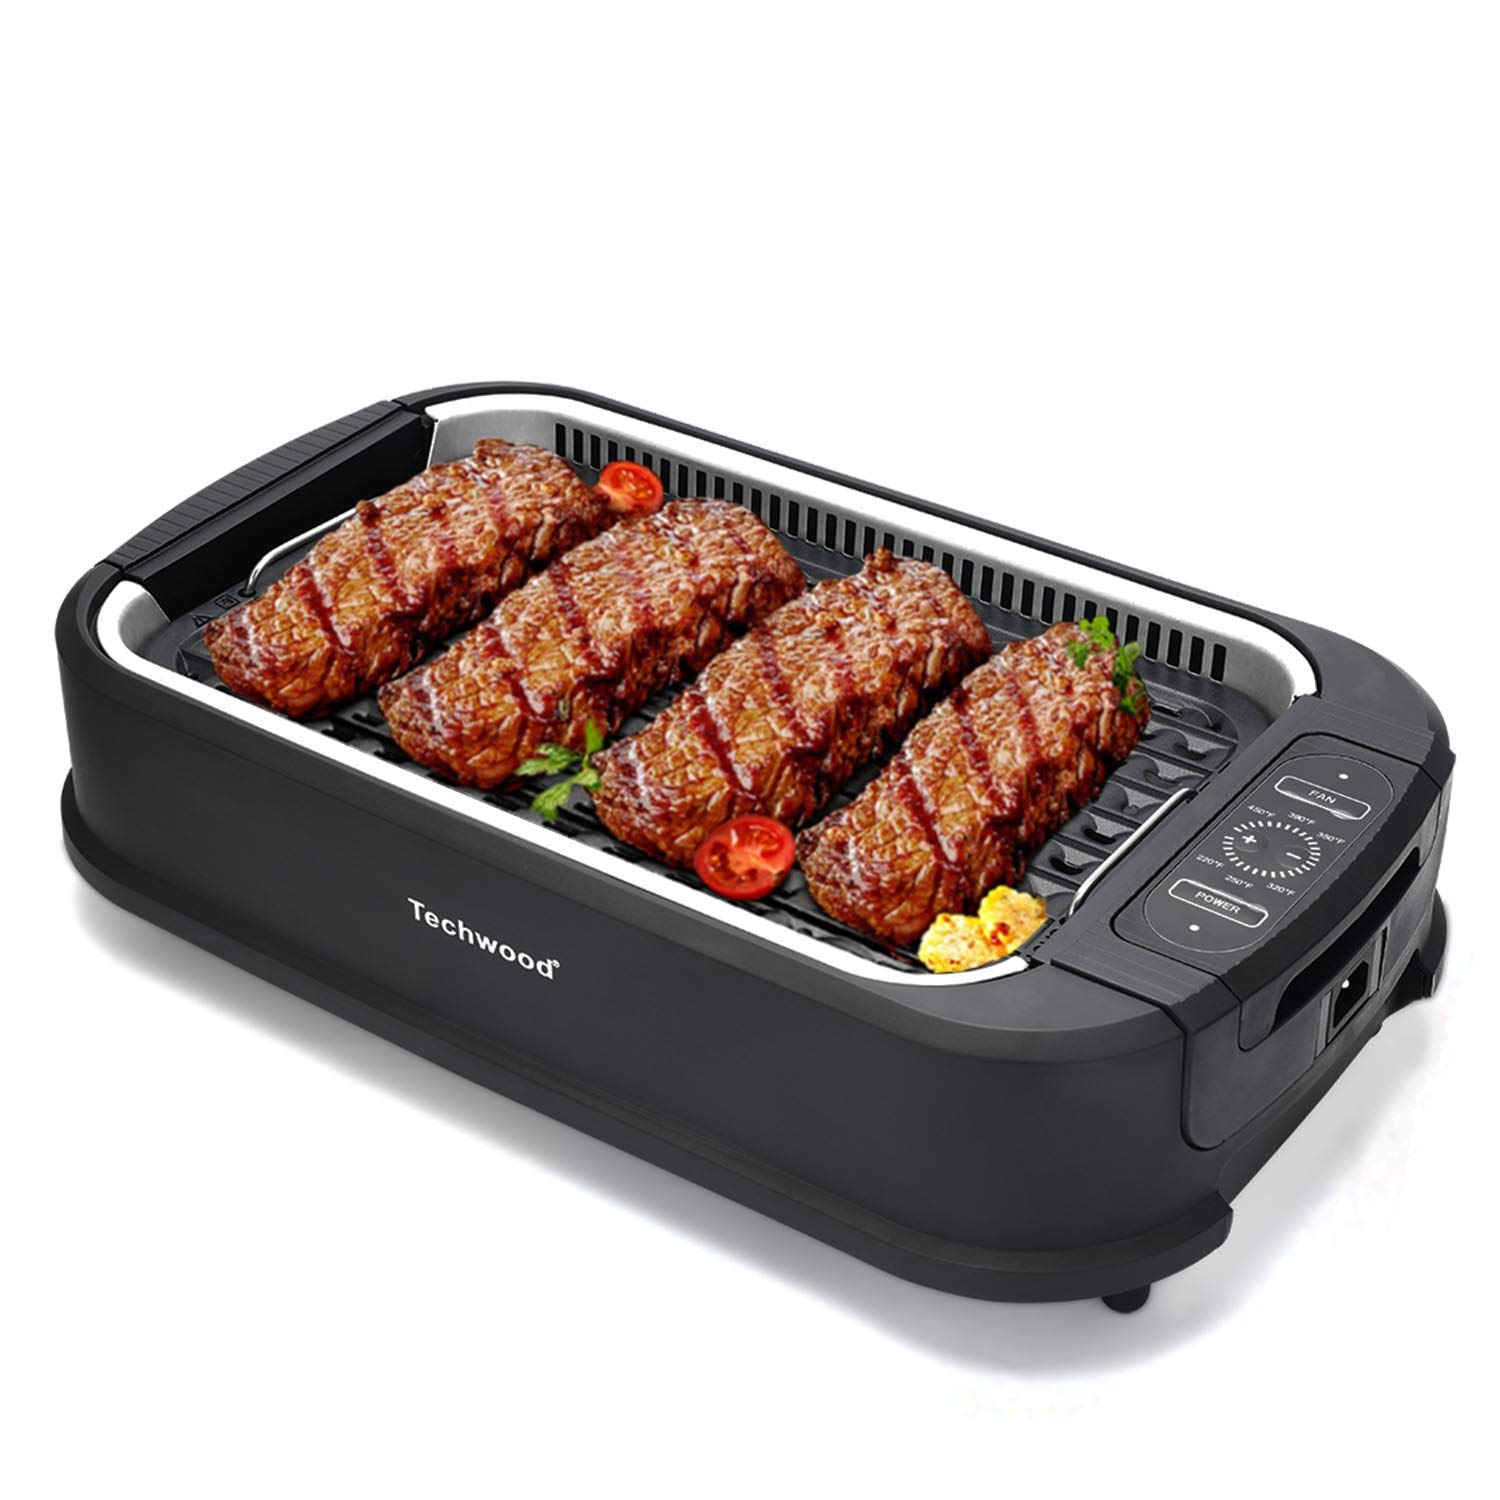 Techwood Smokeless Grill Electric Non-stick BBQ Plate for Indoor/Outdoor, Compact & Portable Electric Grill with Drip Tray & Advanced Turbo Smoke Extractor Technology Adjustable Temperature Control by Techwood